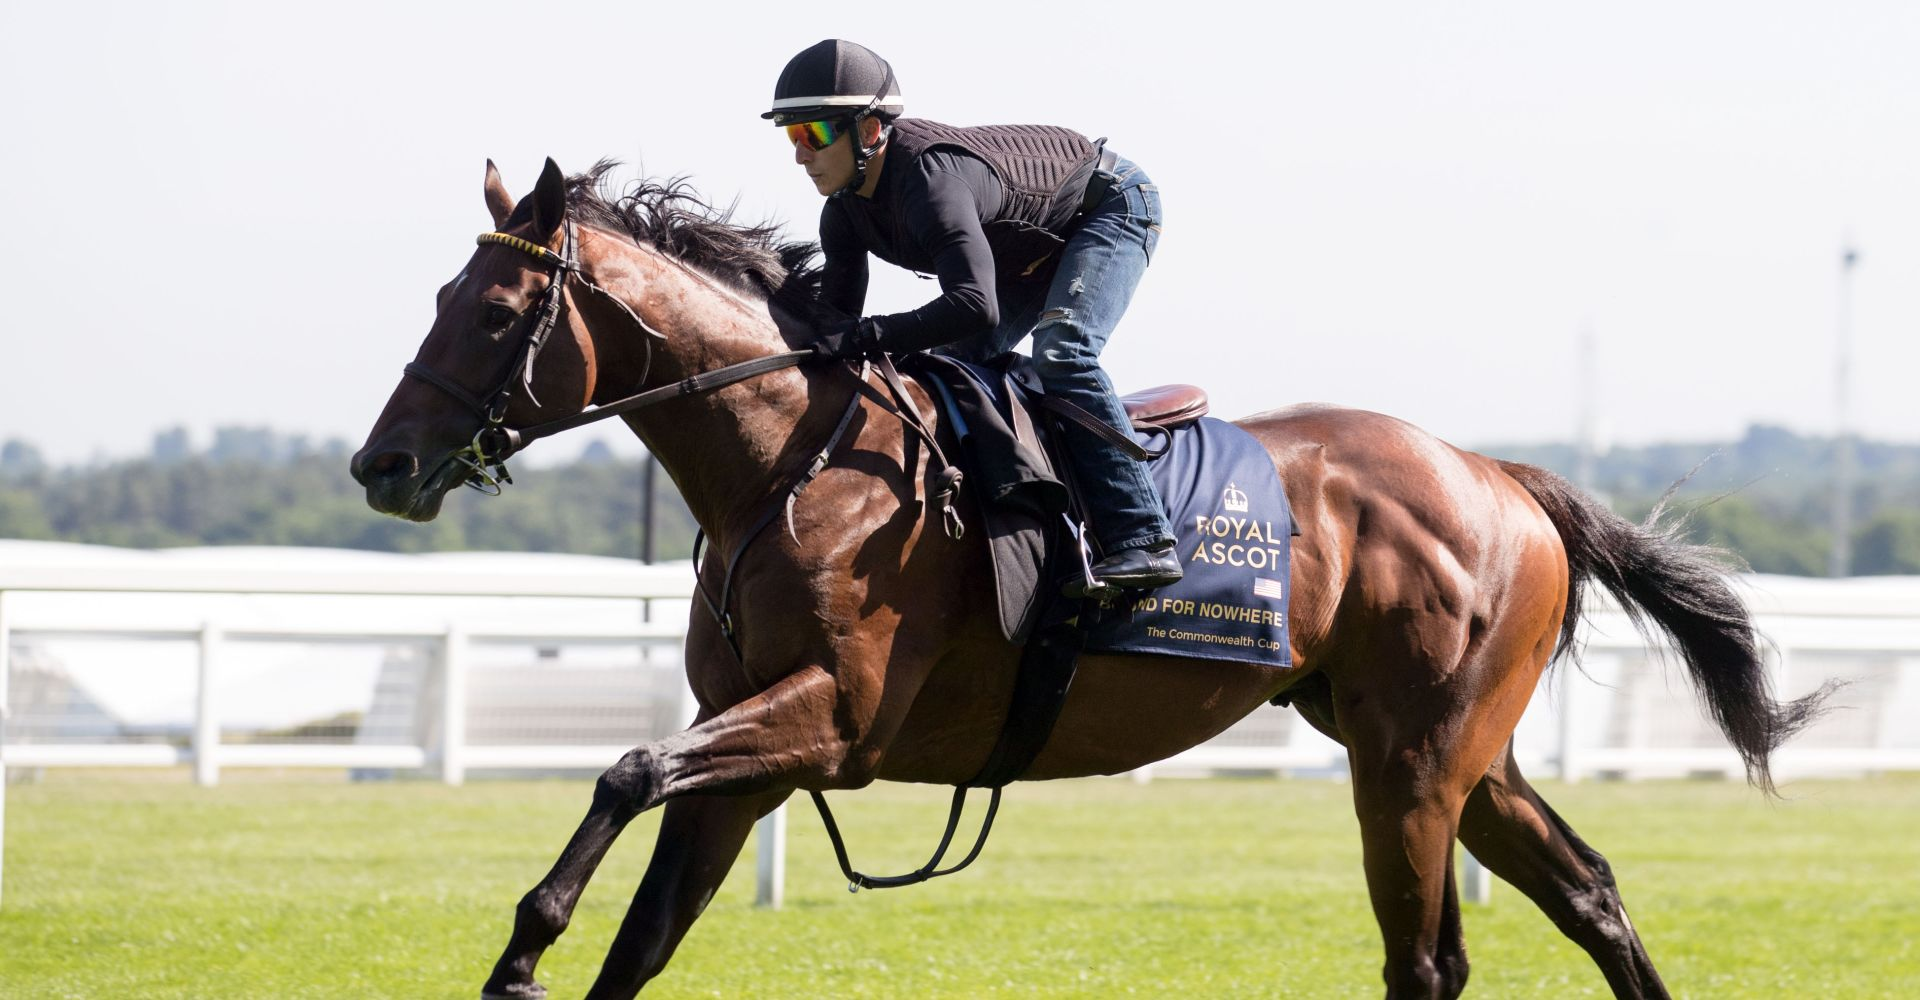 Diamond Jubilee Stakes hope Bound For Nowhere goes for a Royal Ascot workout